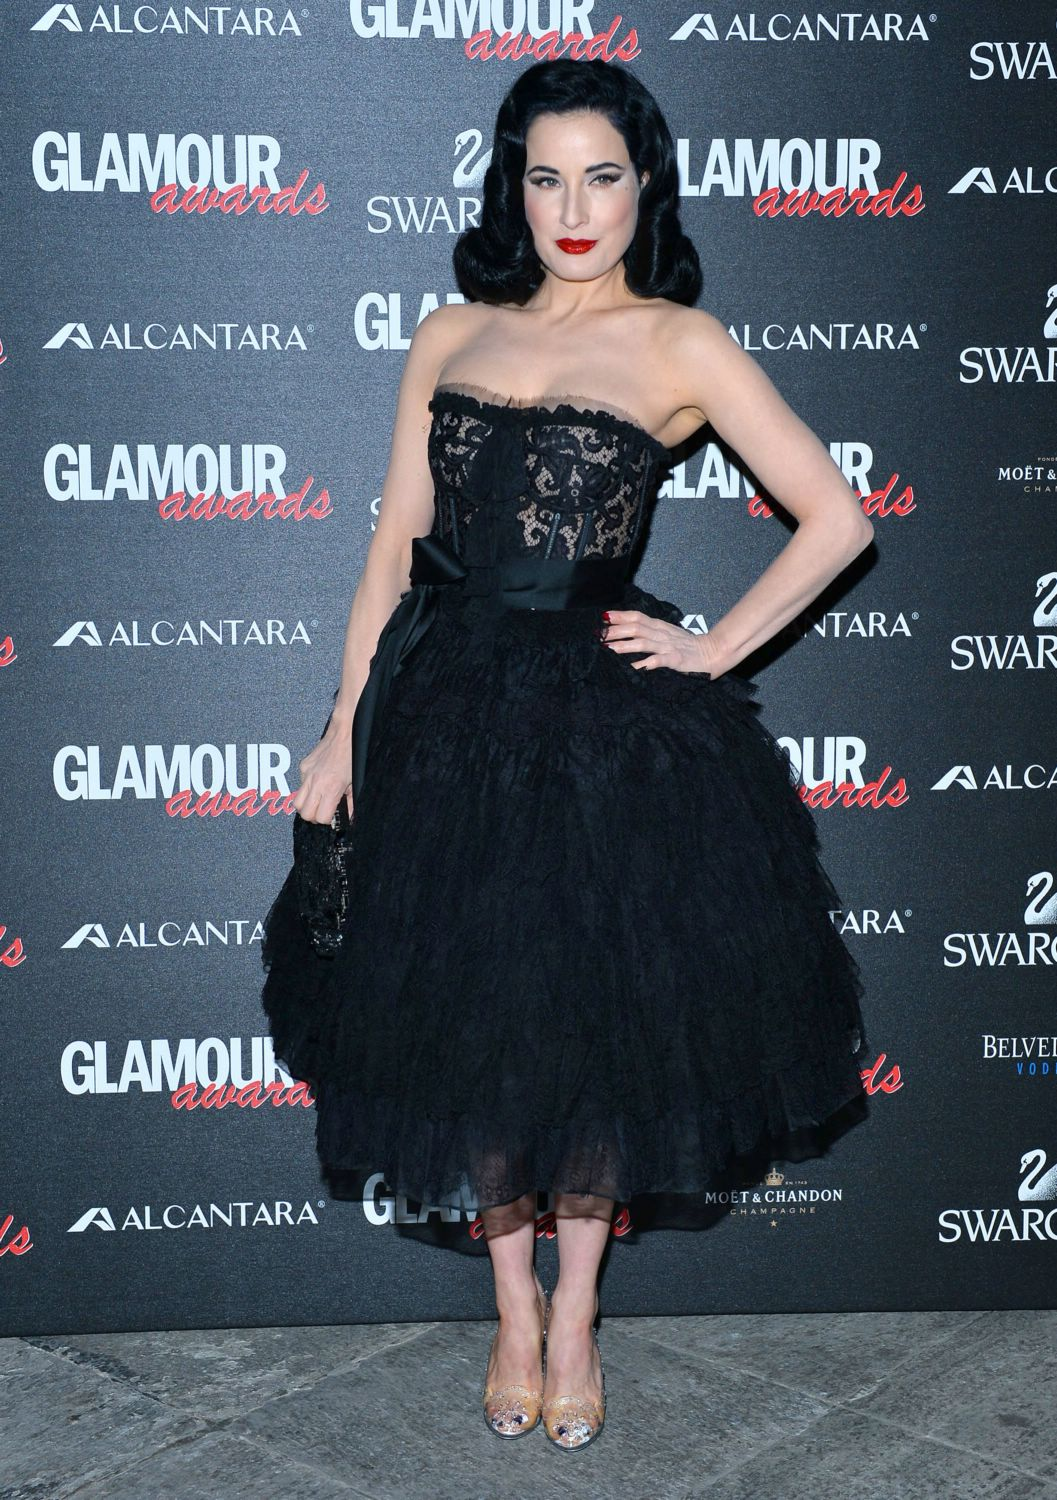 Dita-von-teese-dec-11-glamour-awards03-1